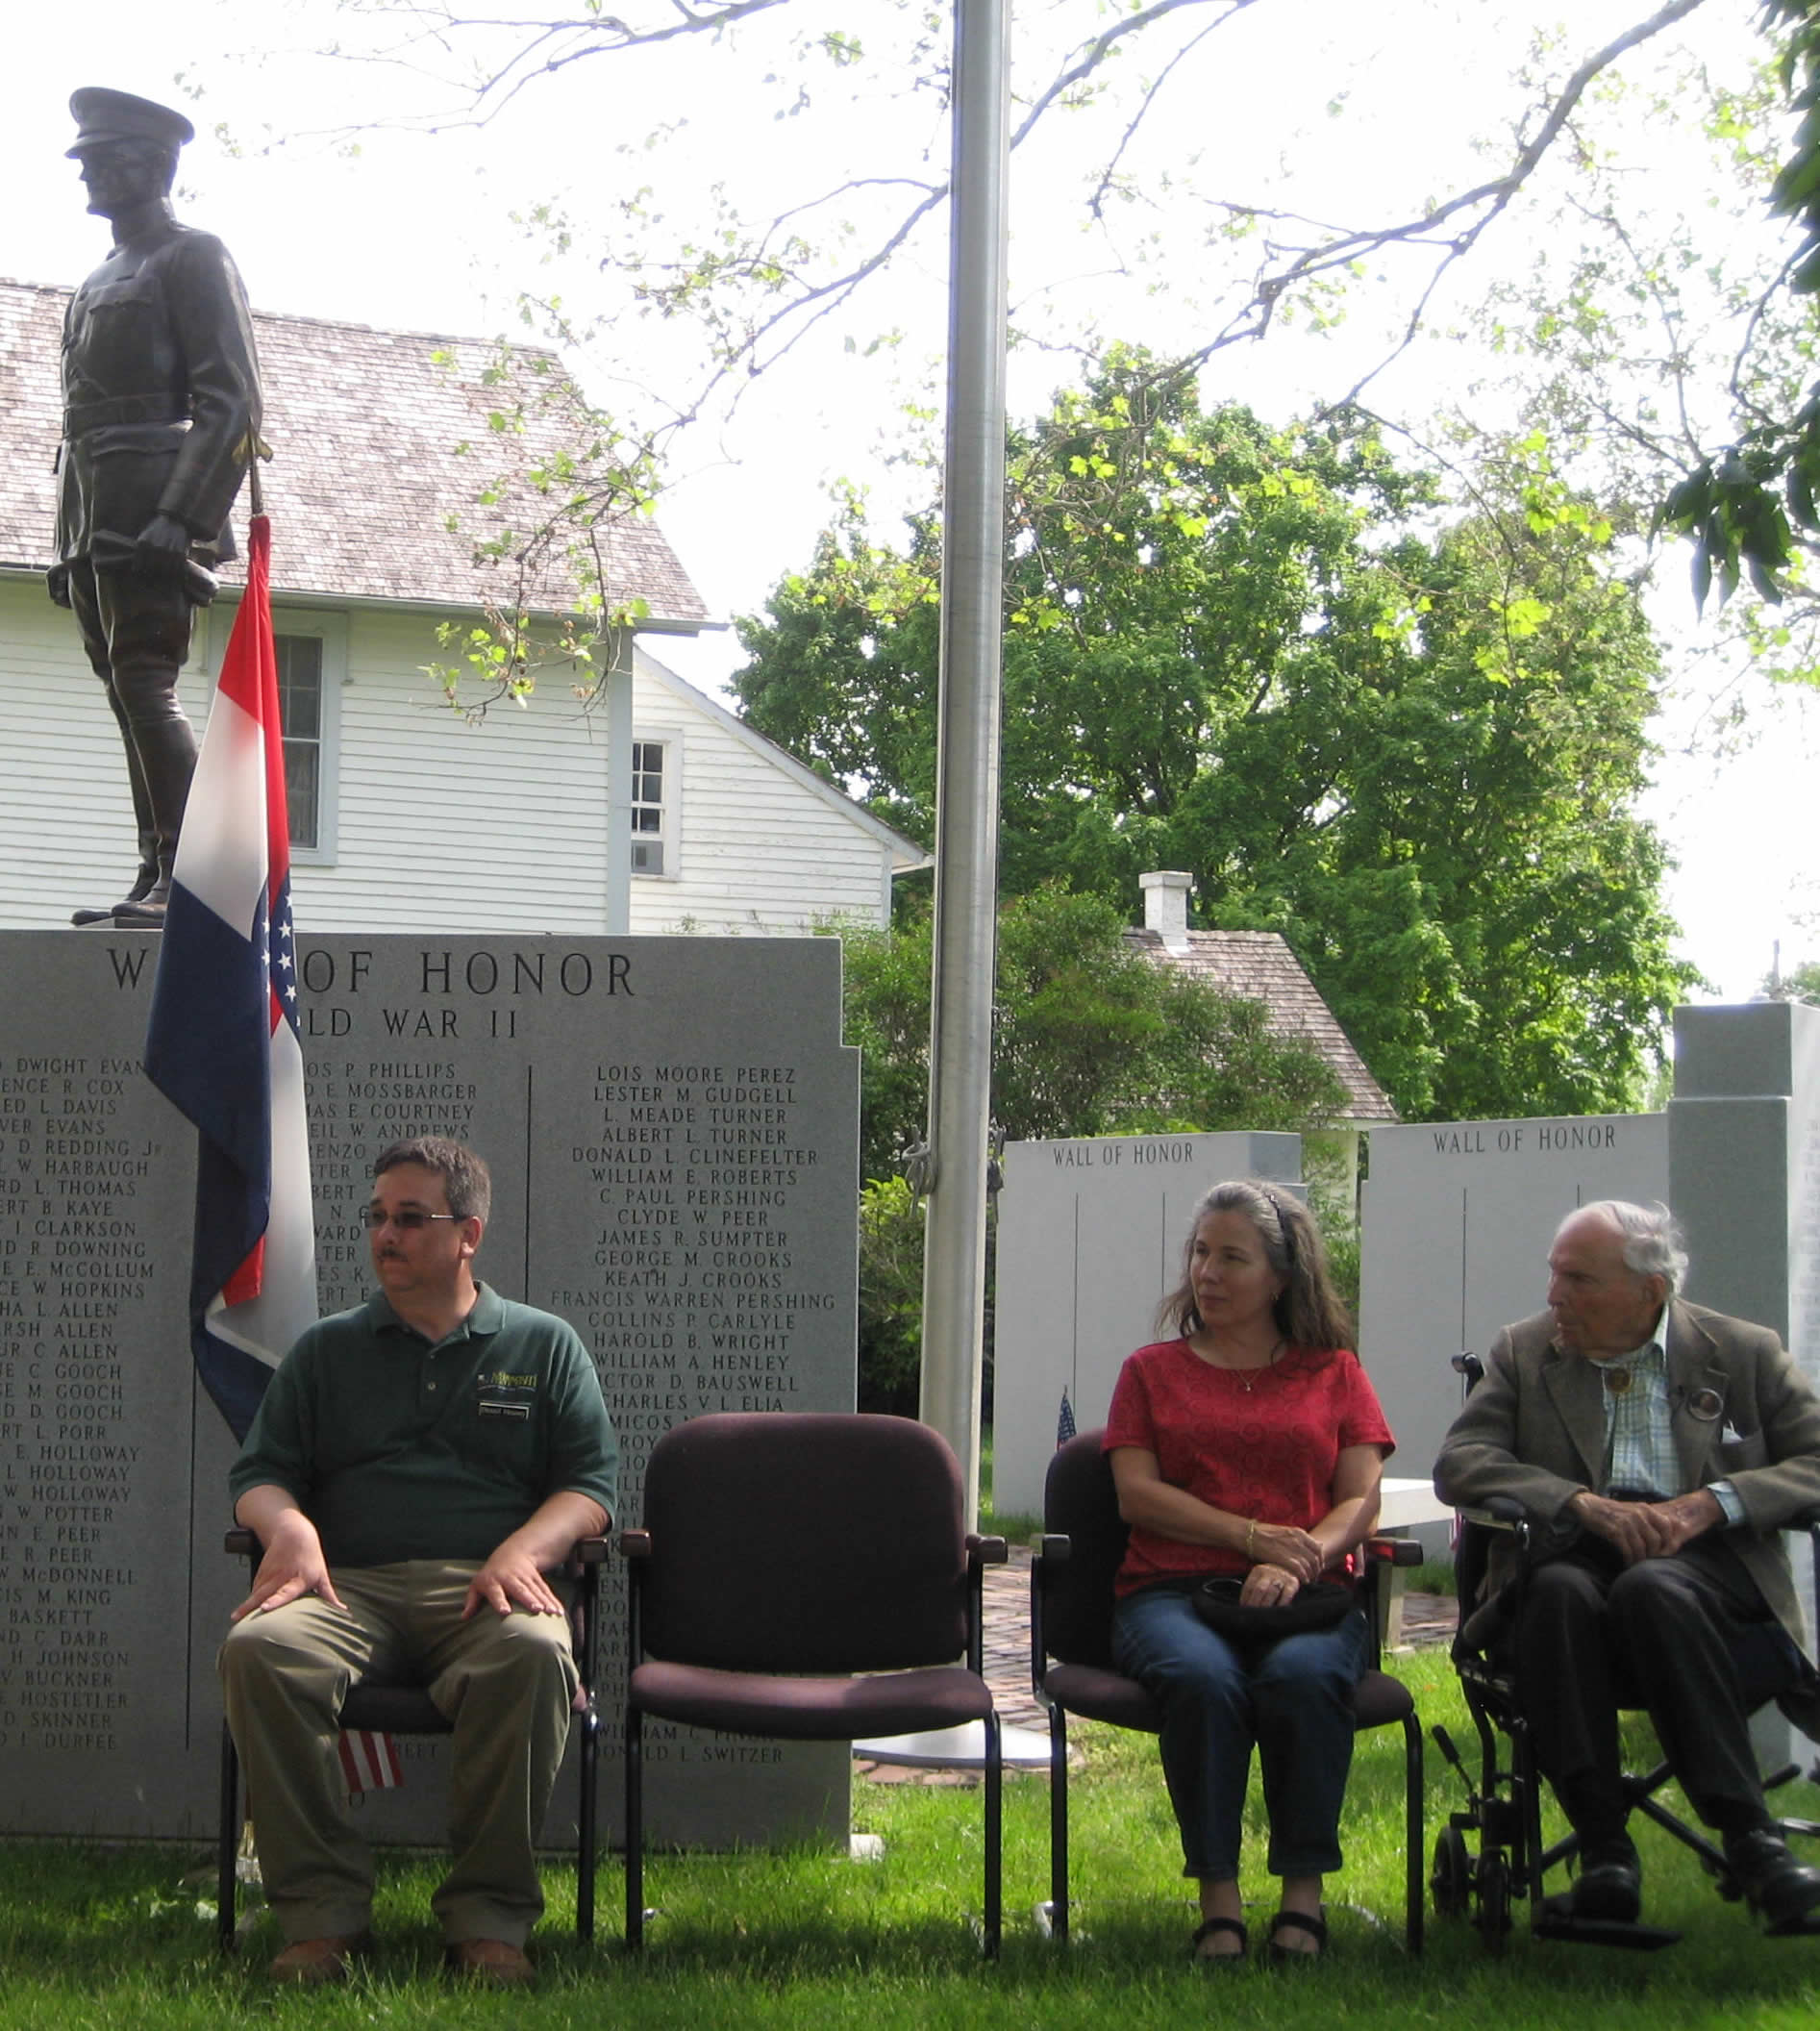 Frank Buckles and two other people sit during a ceremony at the historic site